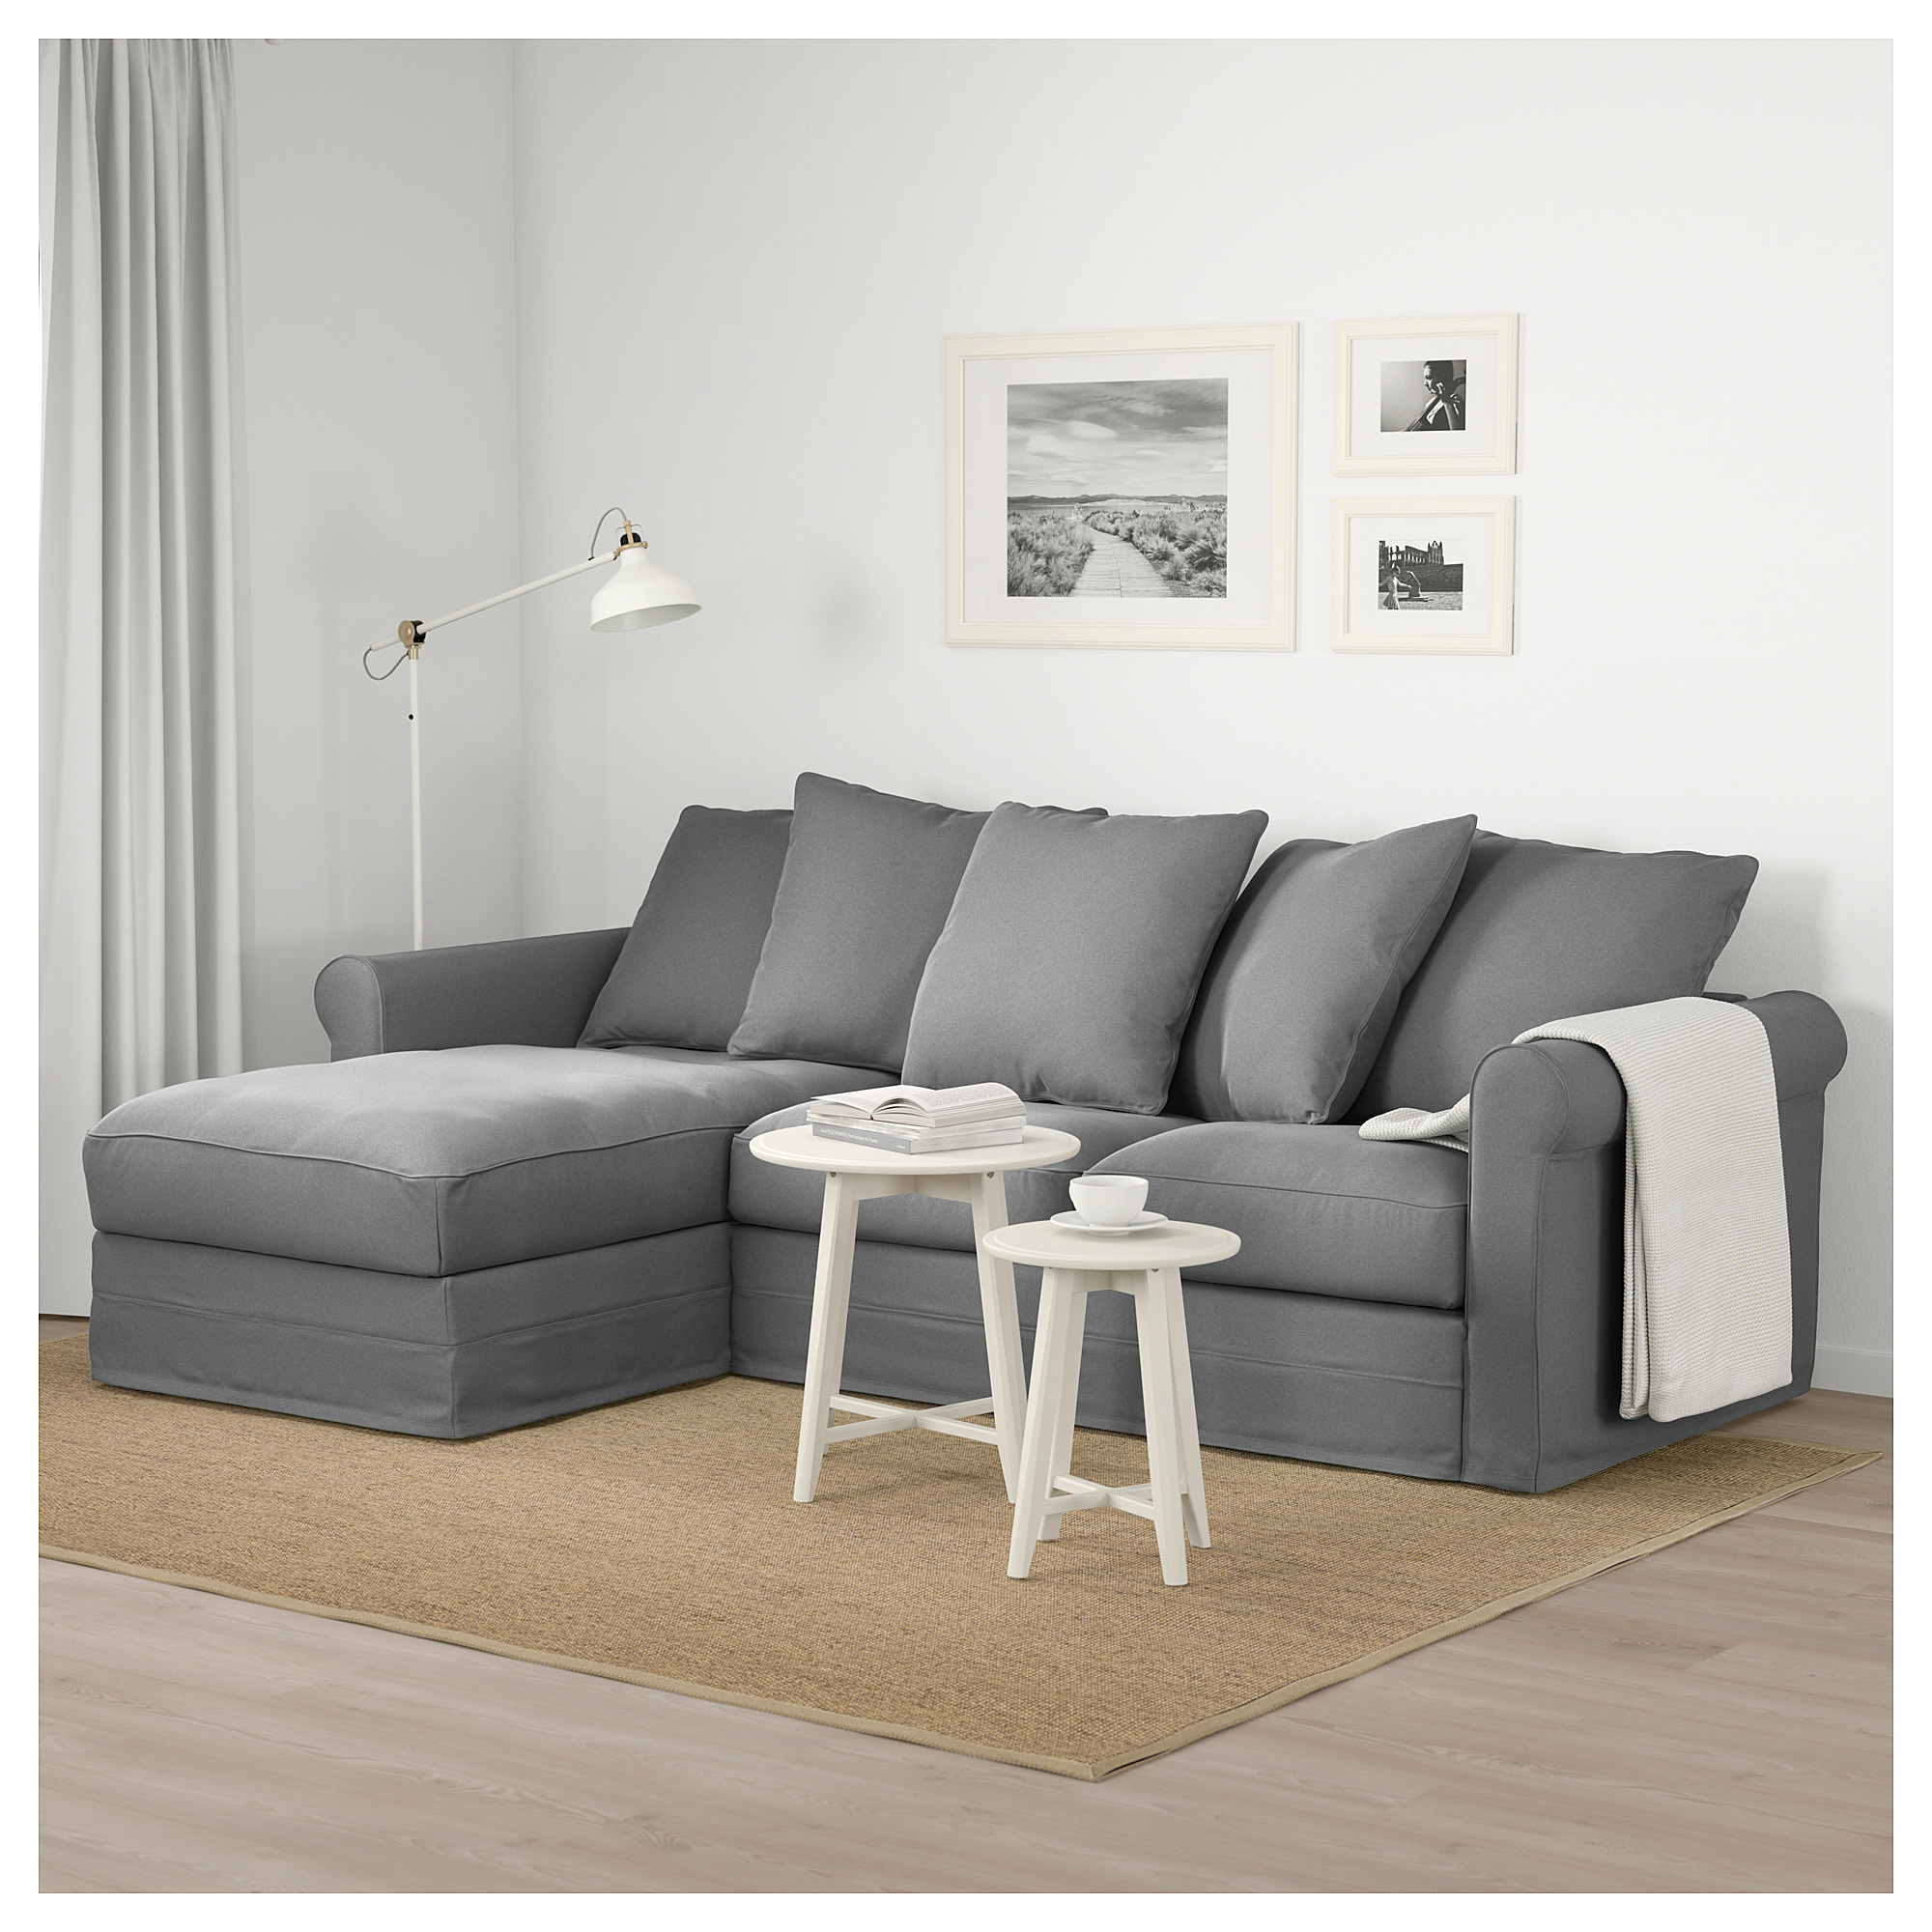 GrÖnlid Sofa With Chaise Ljungen Medium Gray Living Room Sofa Sofa Layout Deep Seat Cushions - Ikea Vorhang Mint